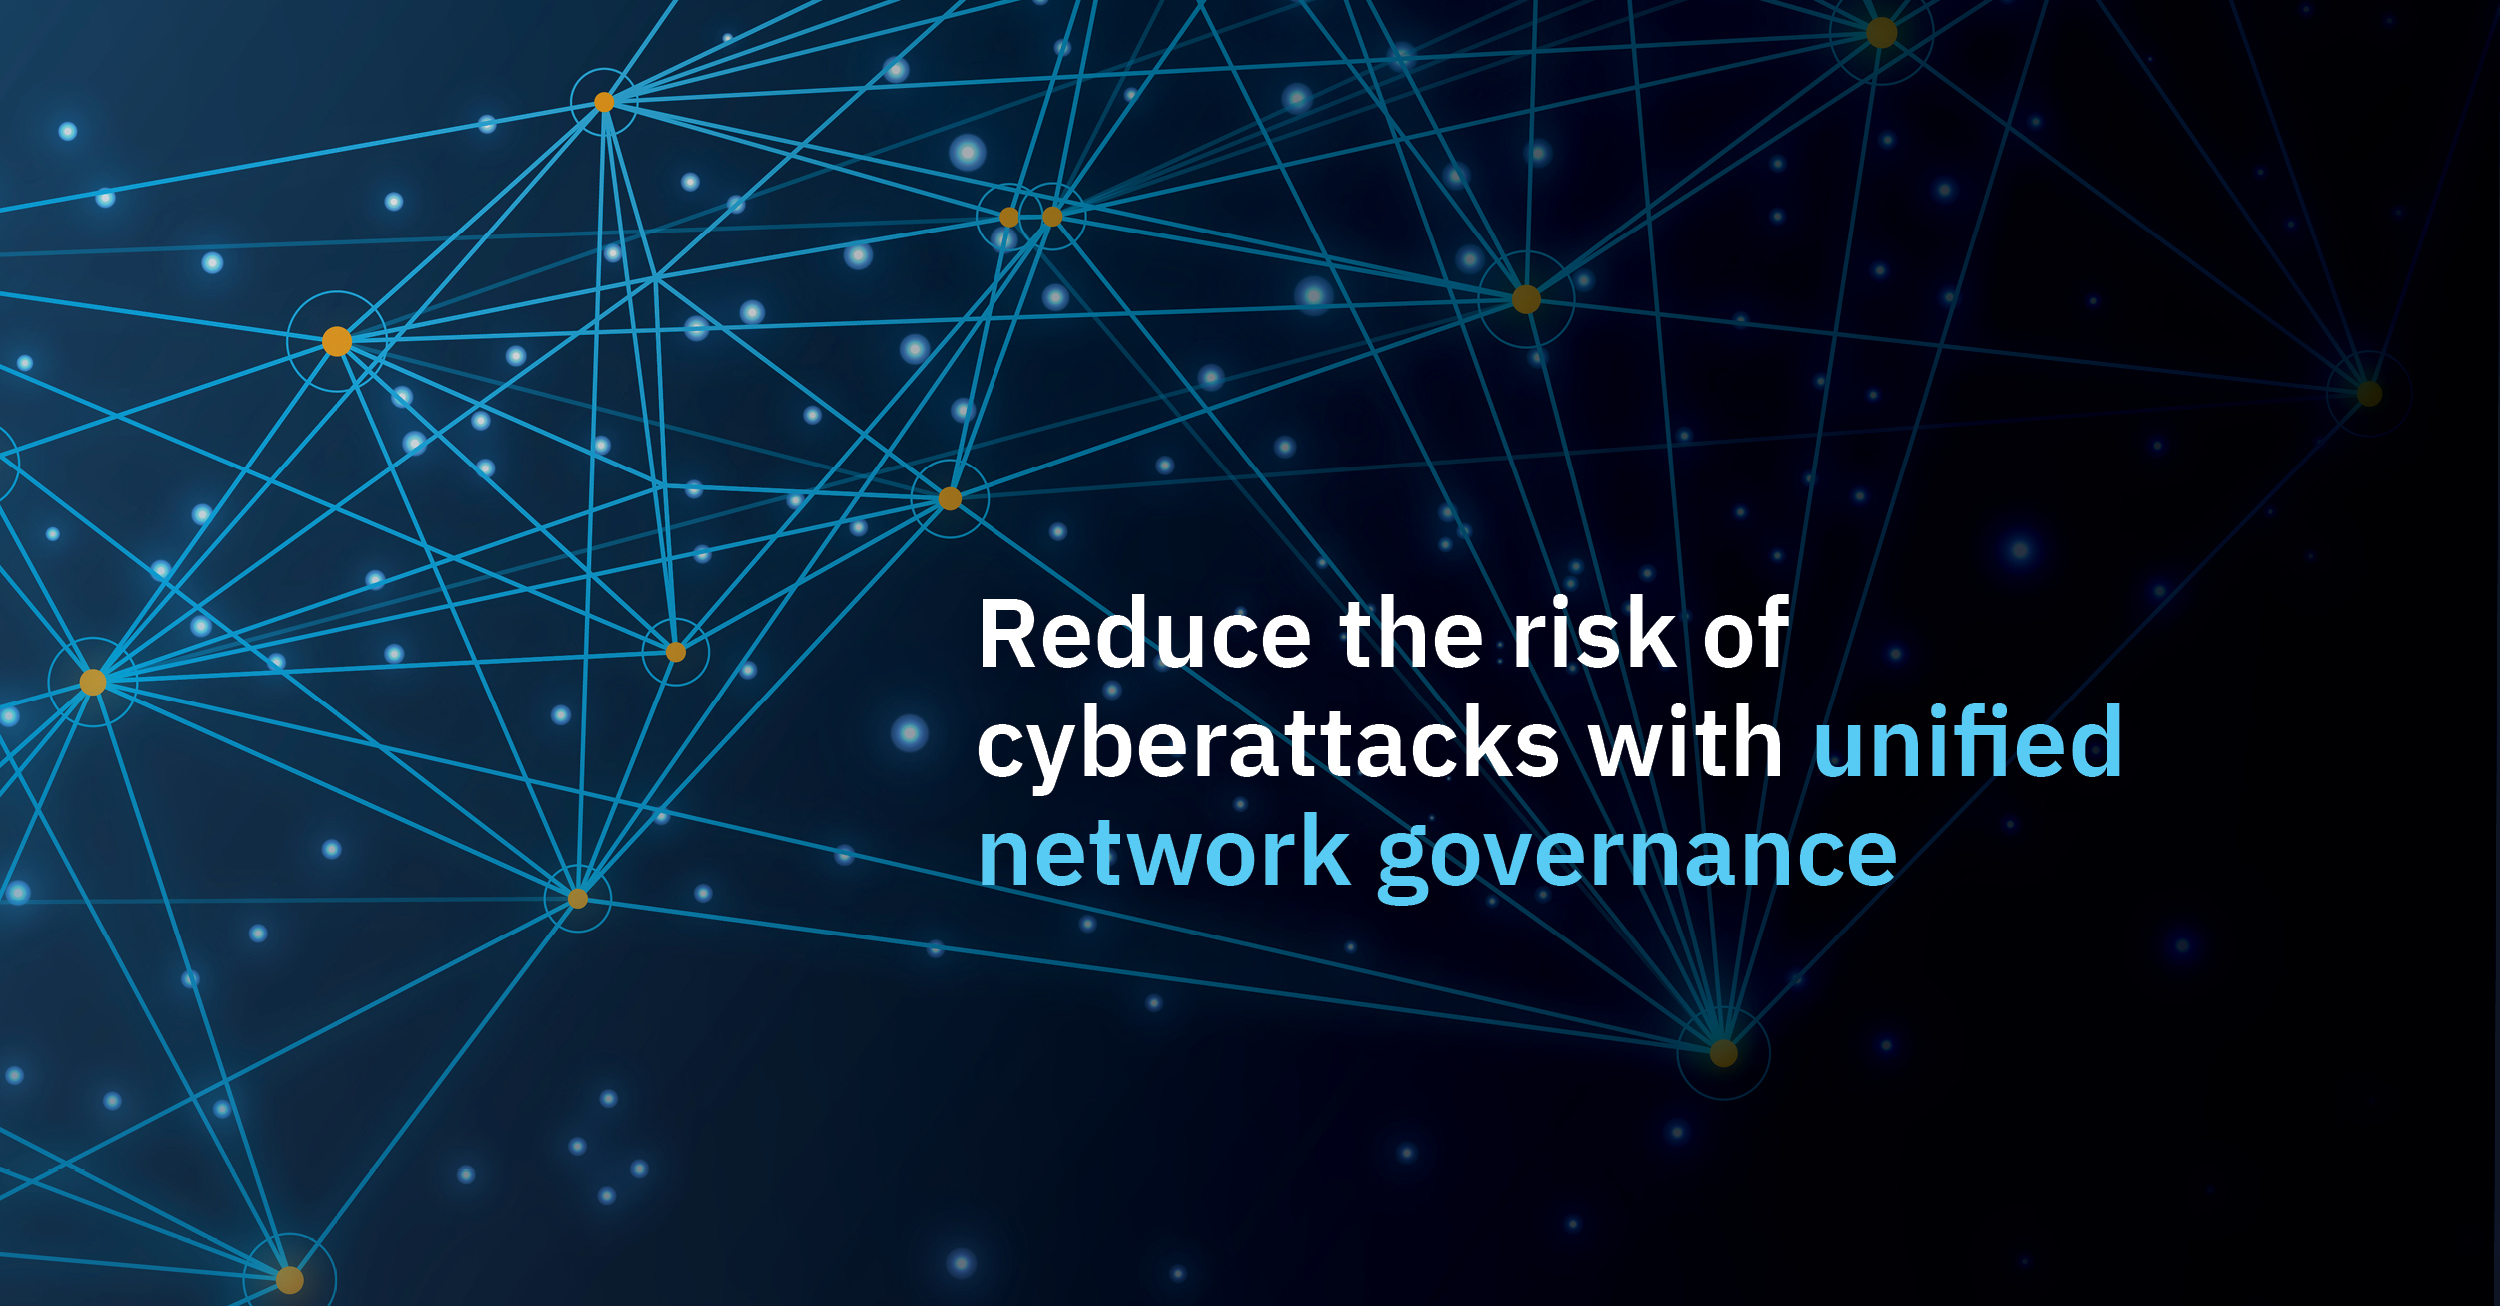 The importance of ongoing governance to expose potential cyber risks